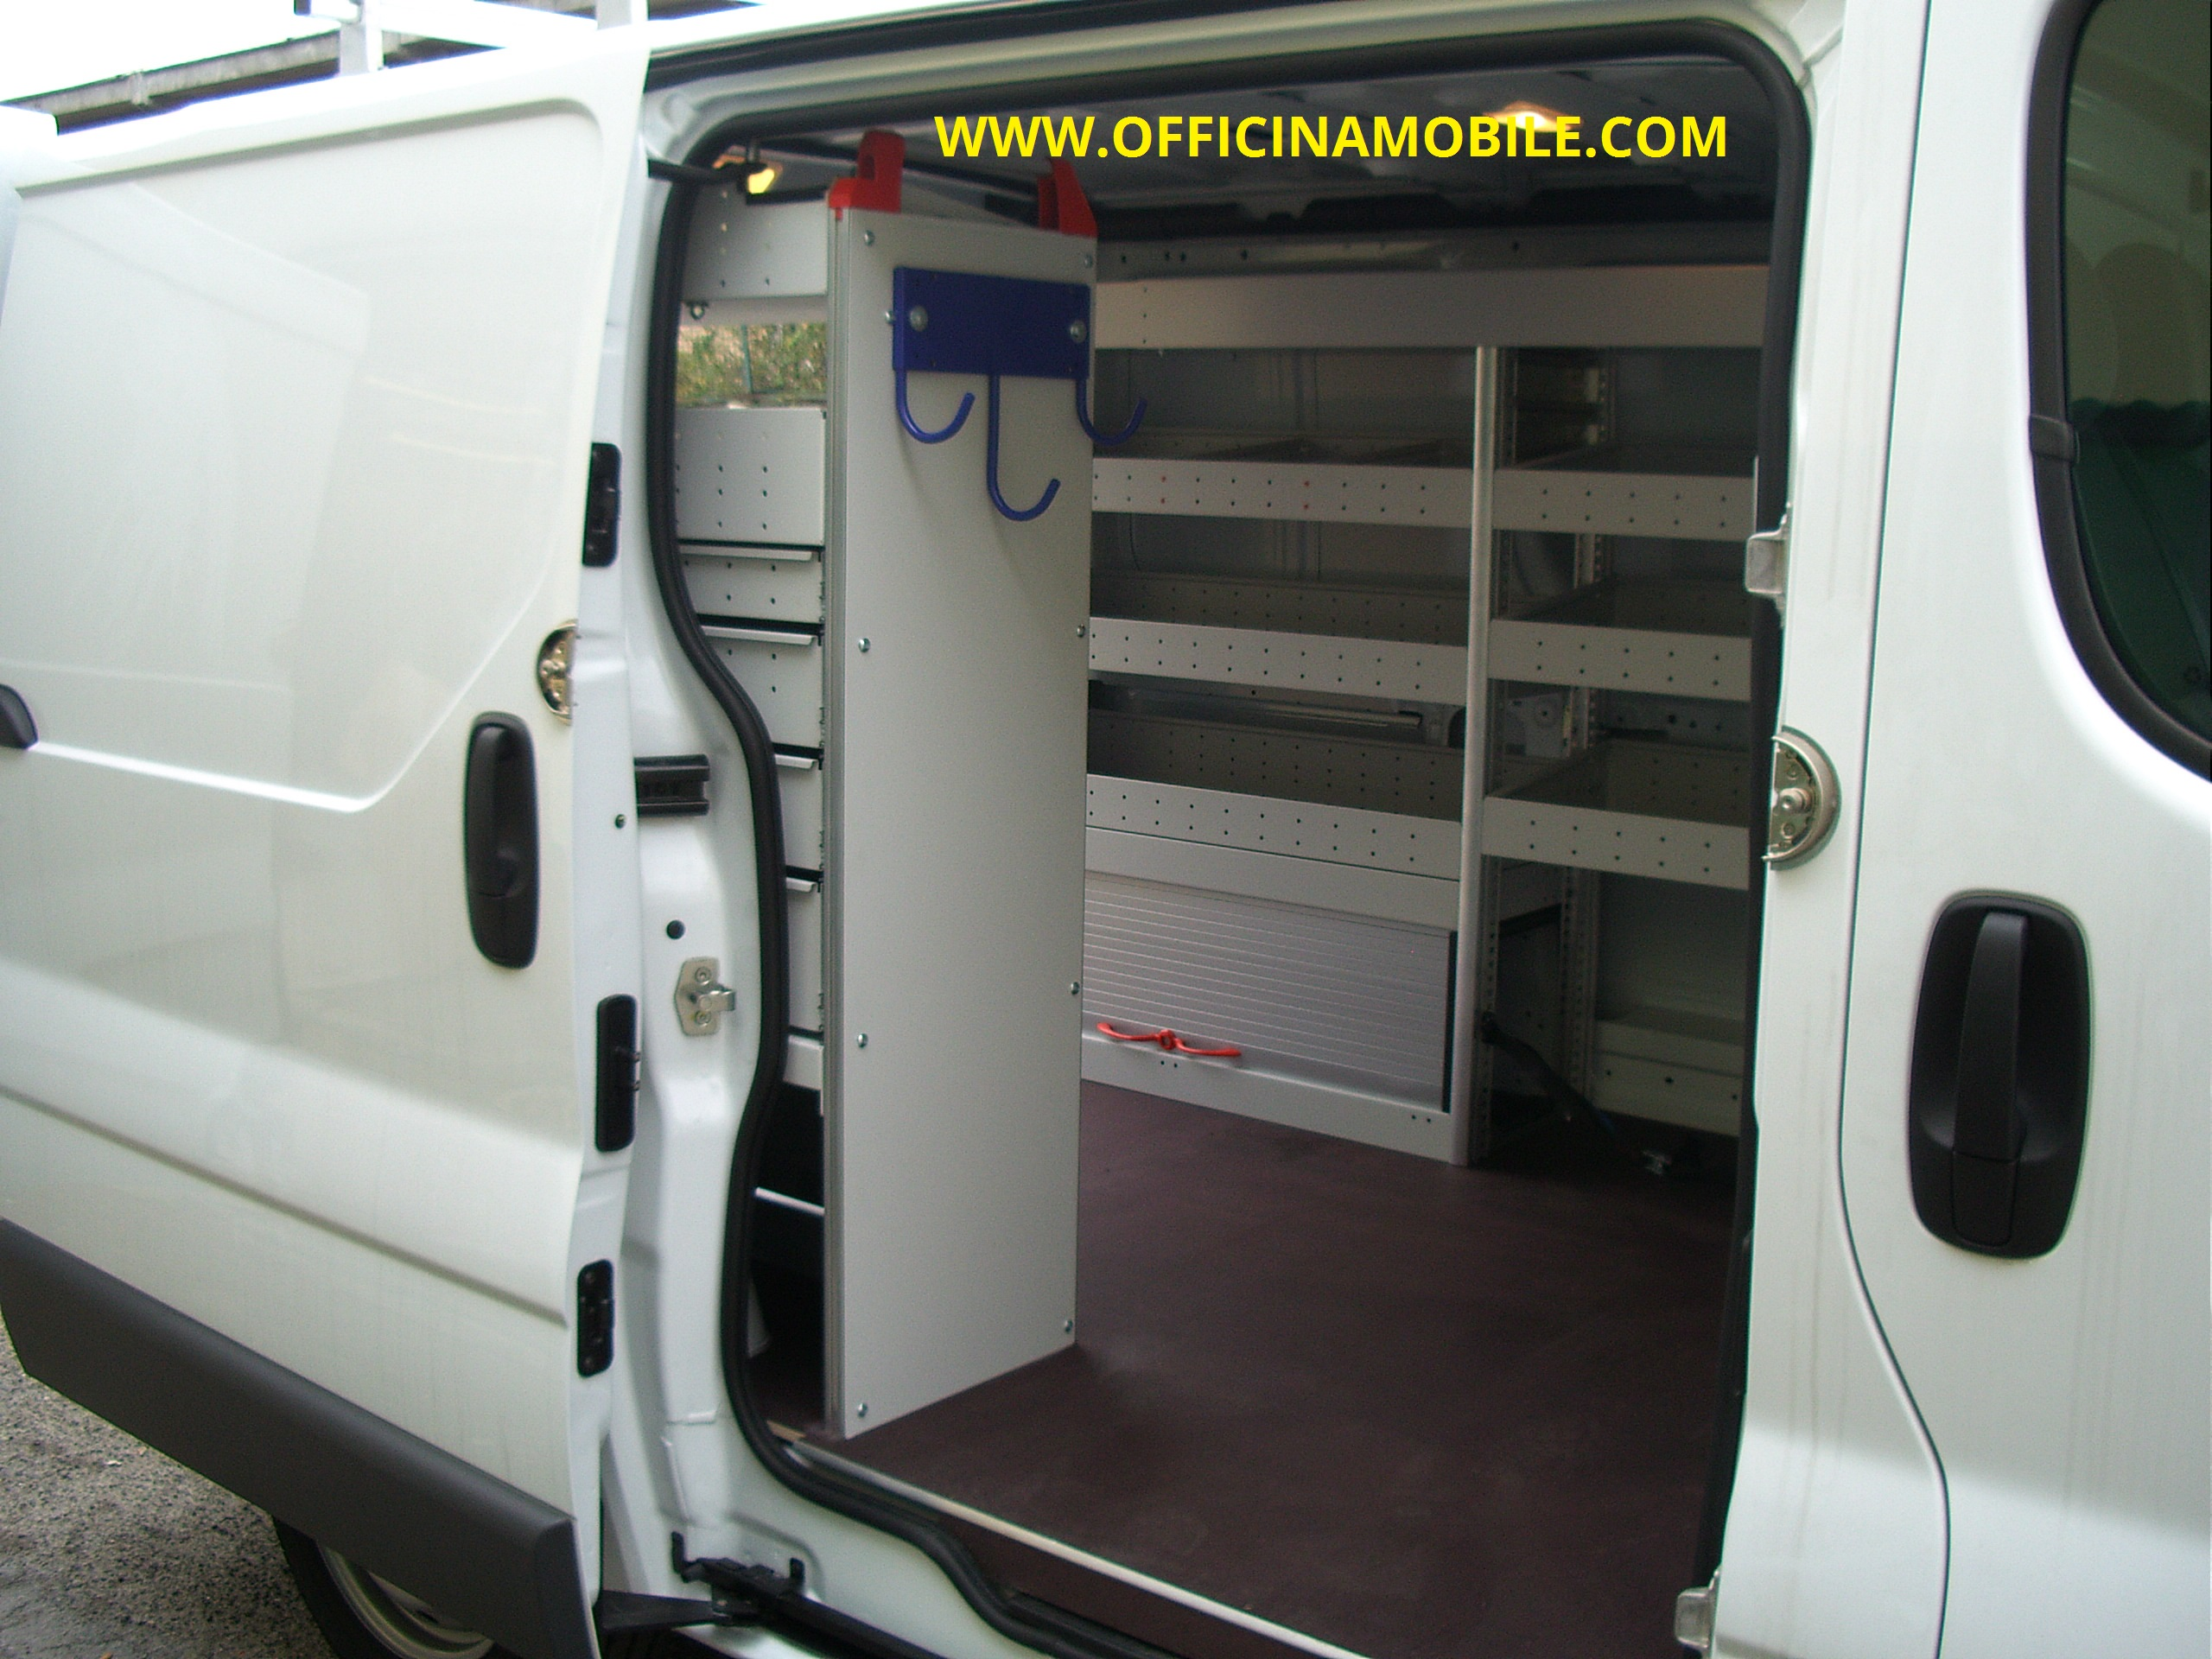 Officina mobile nissan nv300